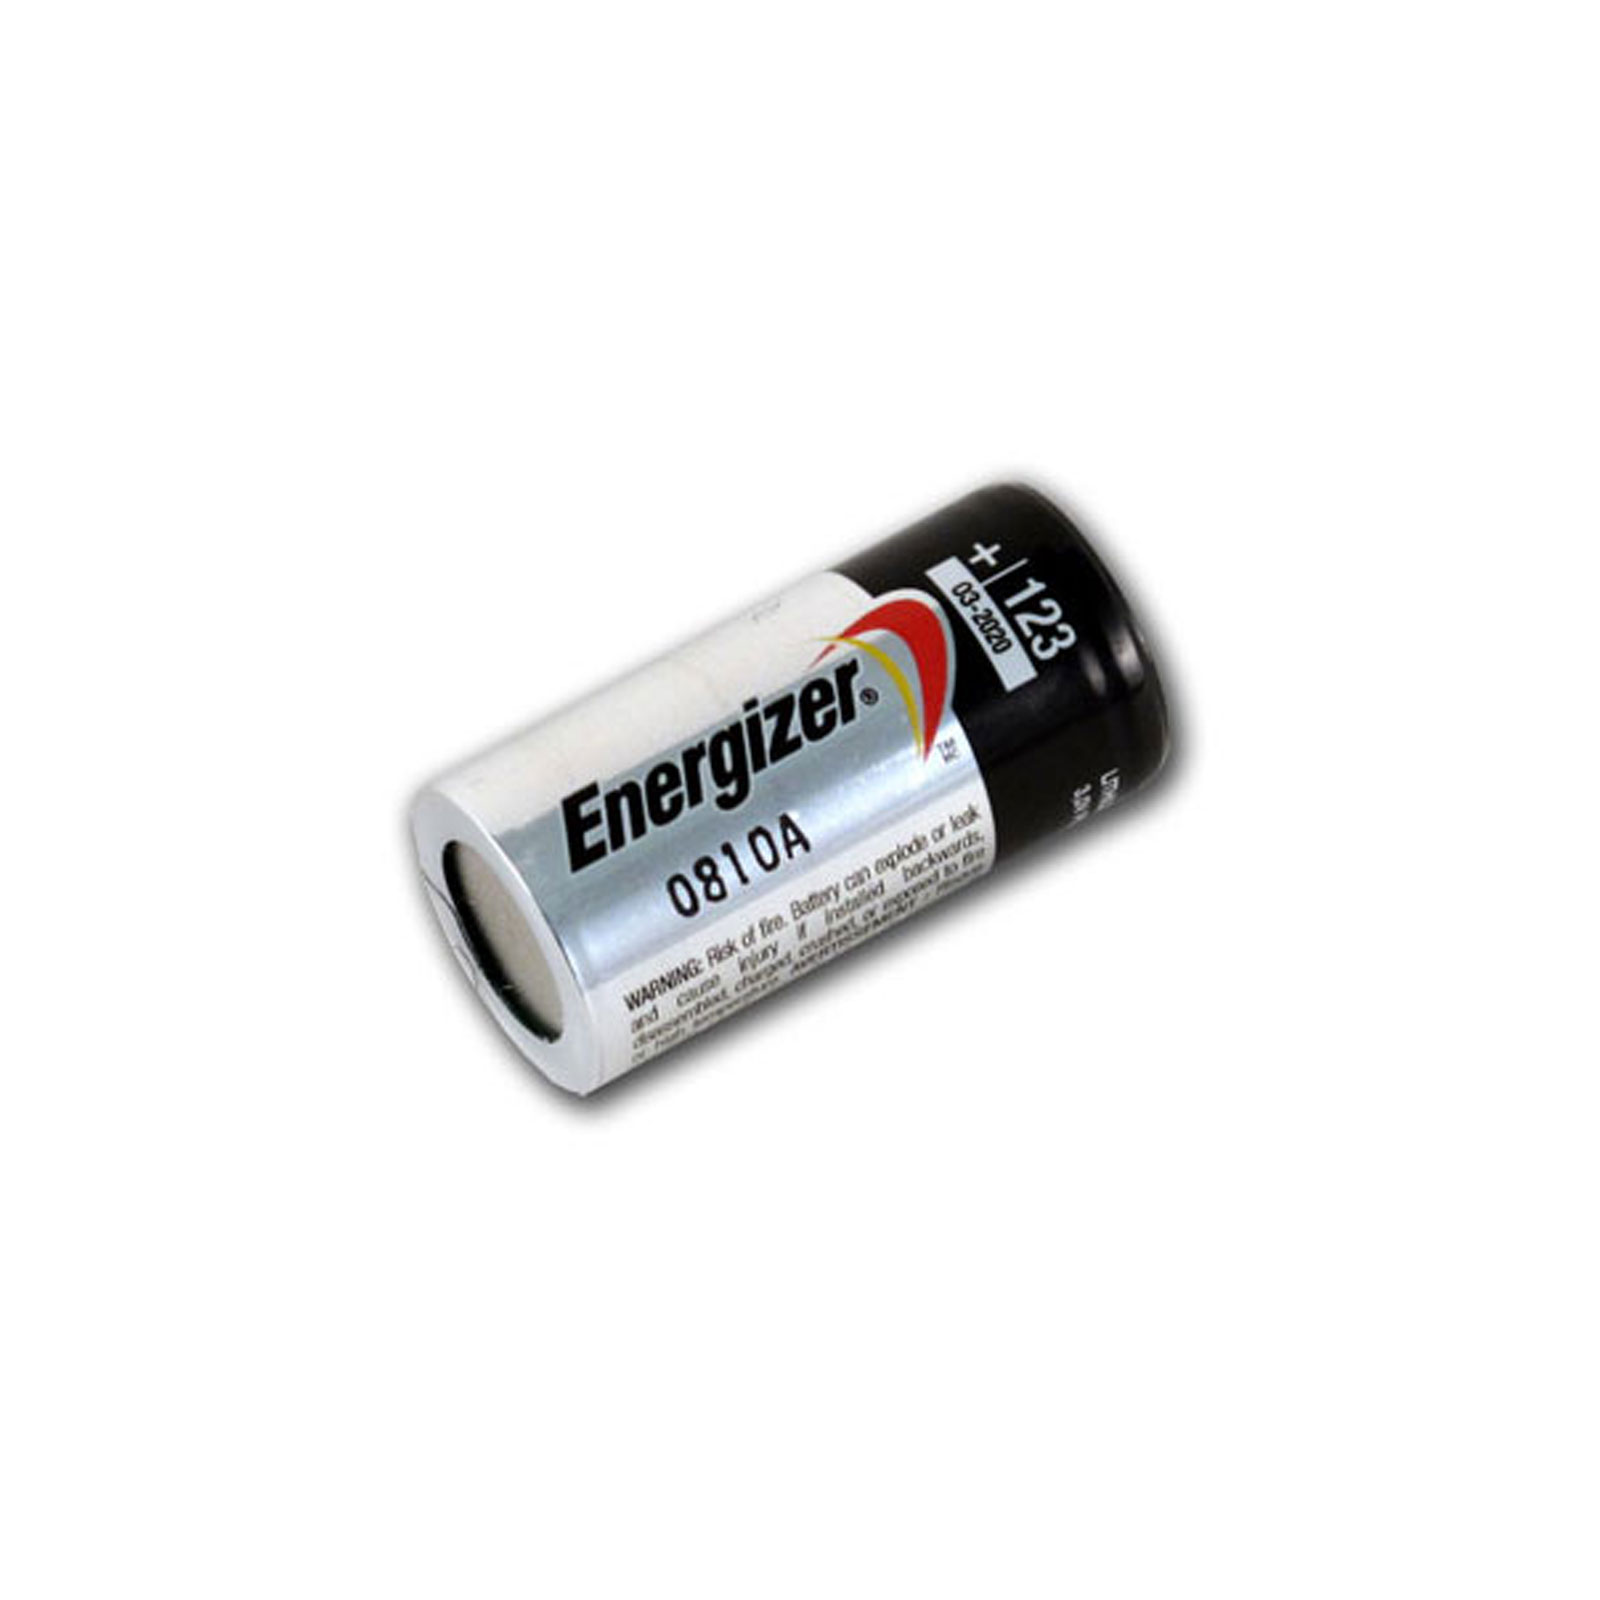 energizer cr123a 123a dl123a photo lithium battery 3v 1500mah fast usa ship ebay. Black Bedroom Furniture Sets. Home Design Ideas